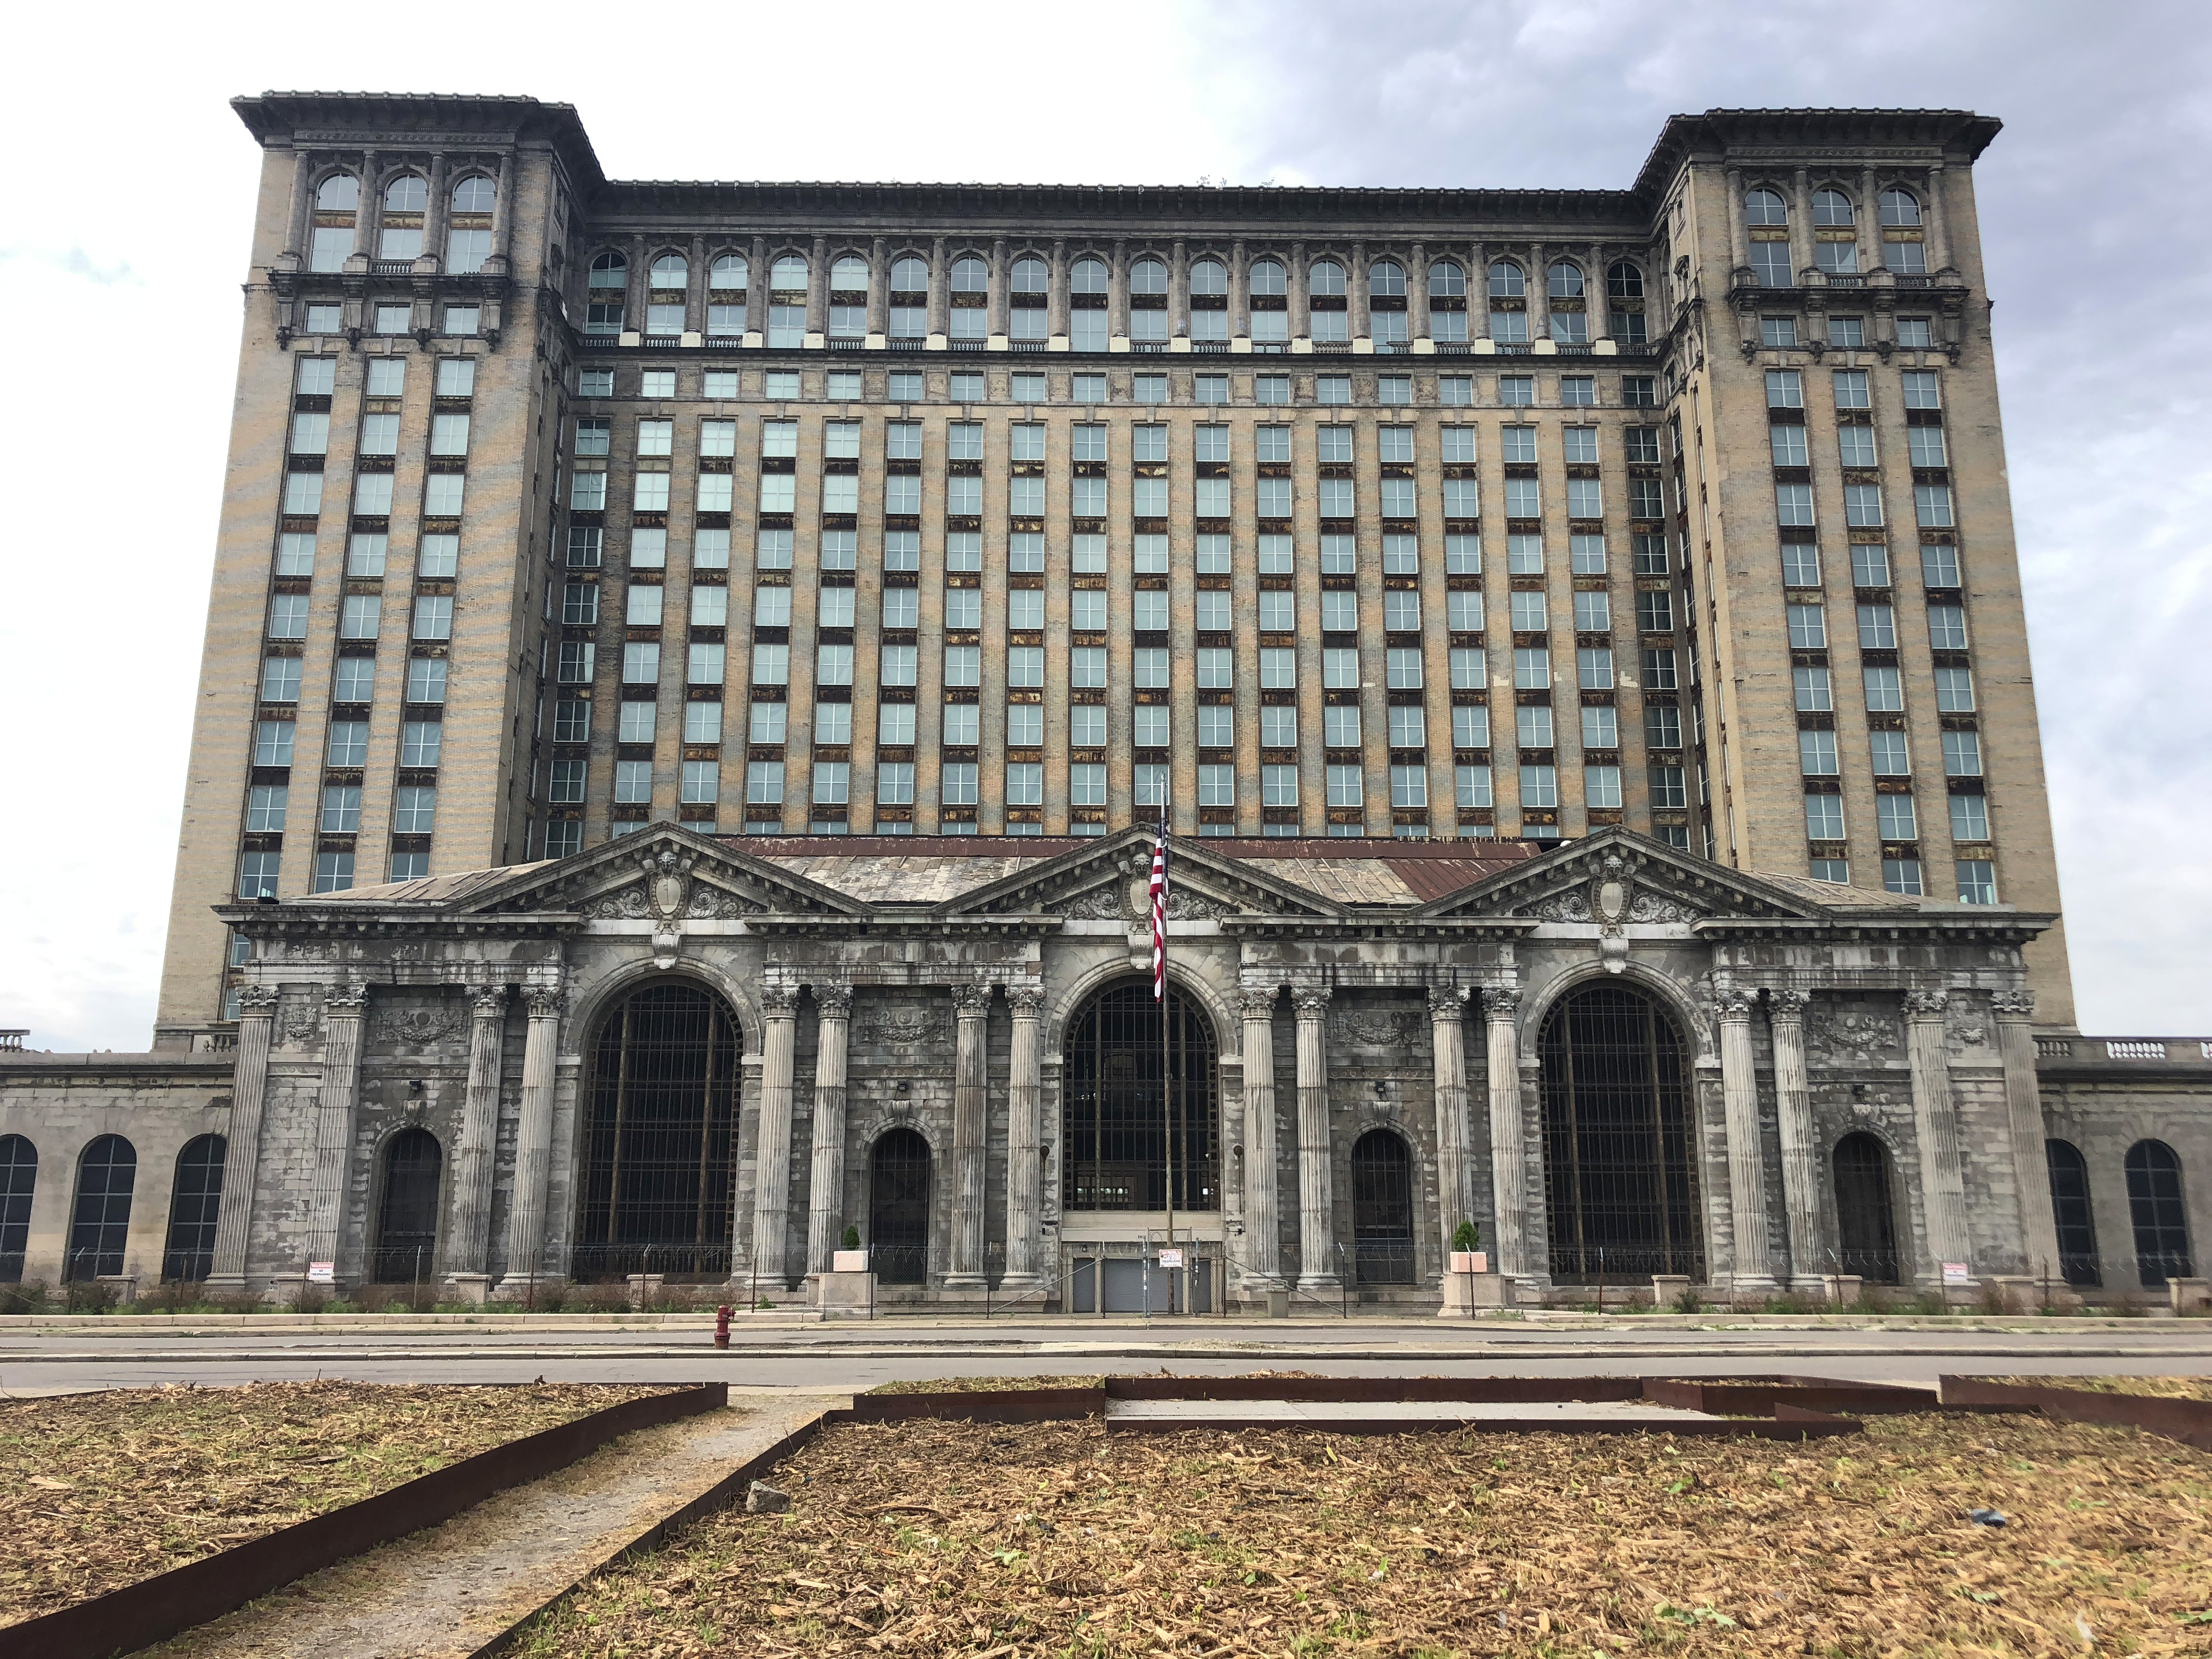 """Photo of Michigan Central Station taken by Sarah Williams for her award-winning story: """"Hope has not left the station."""""""